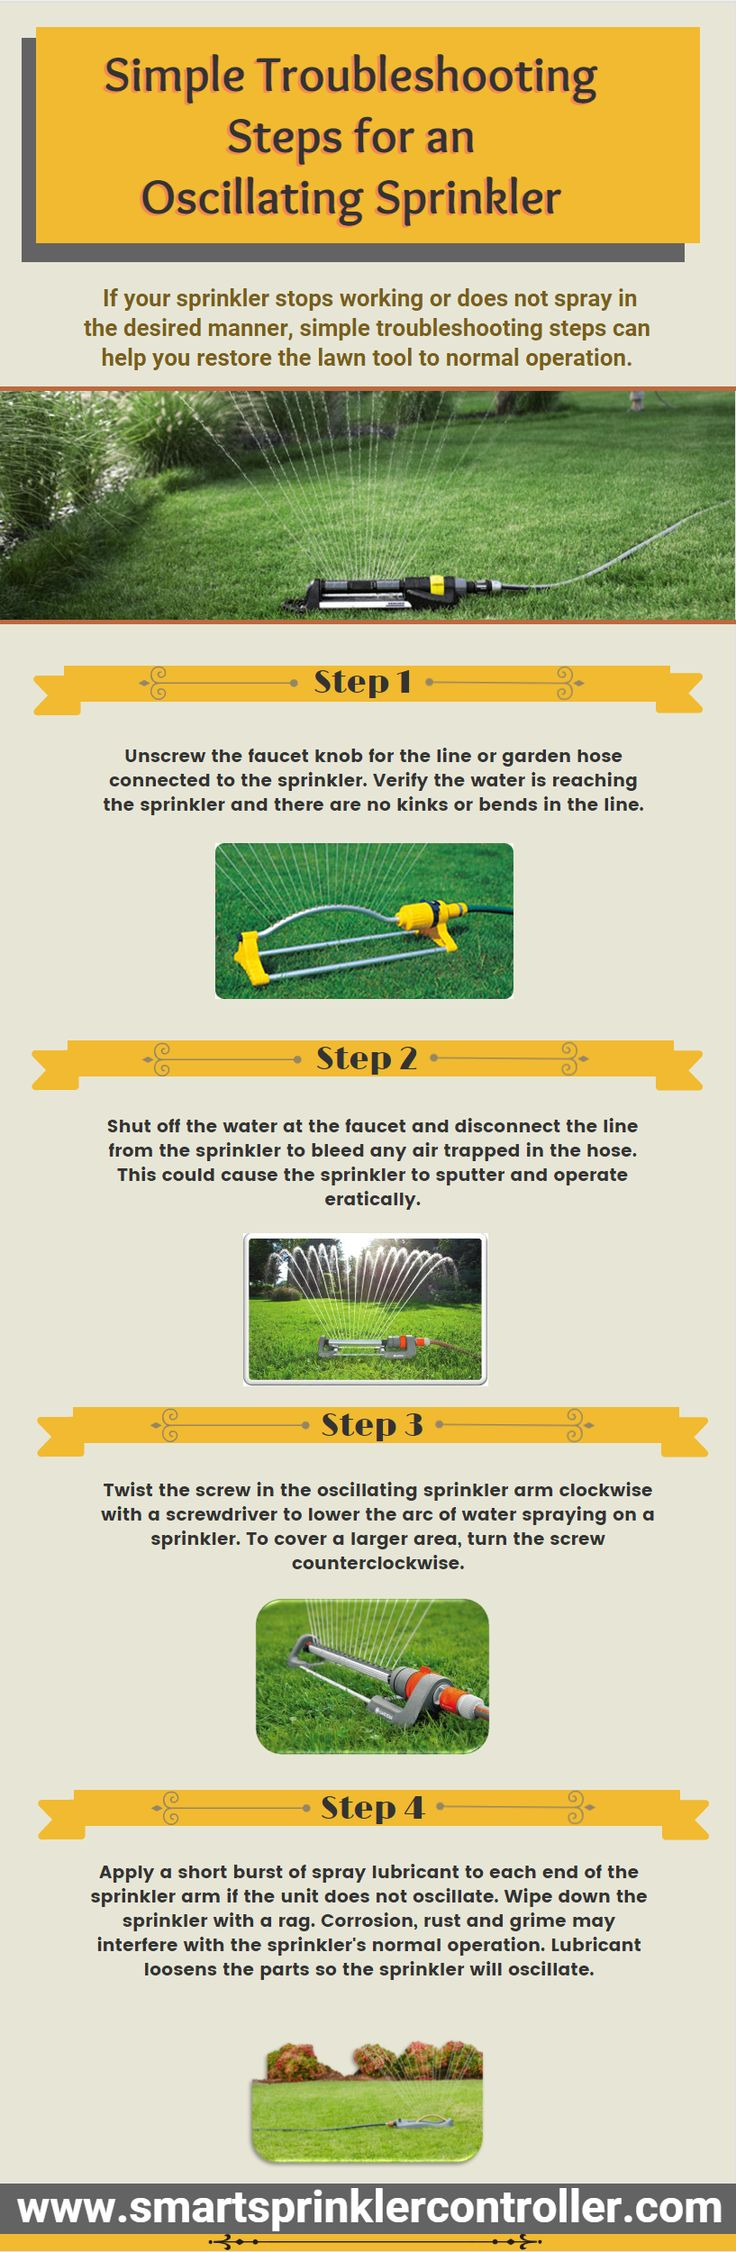 If you are using an #oscillatingsprinkler and having a problem with using it or your #sprinkler stops functioning in a preferred manner. Don't worry about it, here is you see the simple troubleshooting steps for an oscillating sprinkler. Must Look it. https://www.smartsprinklercontroller.com/best-oscillating-sprinklers/